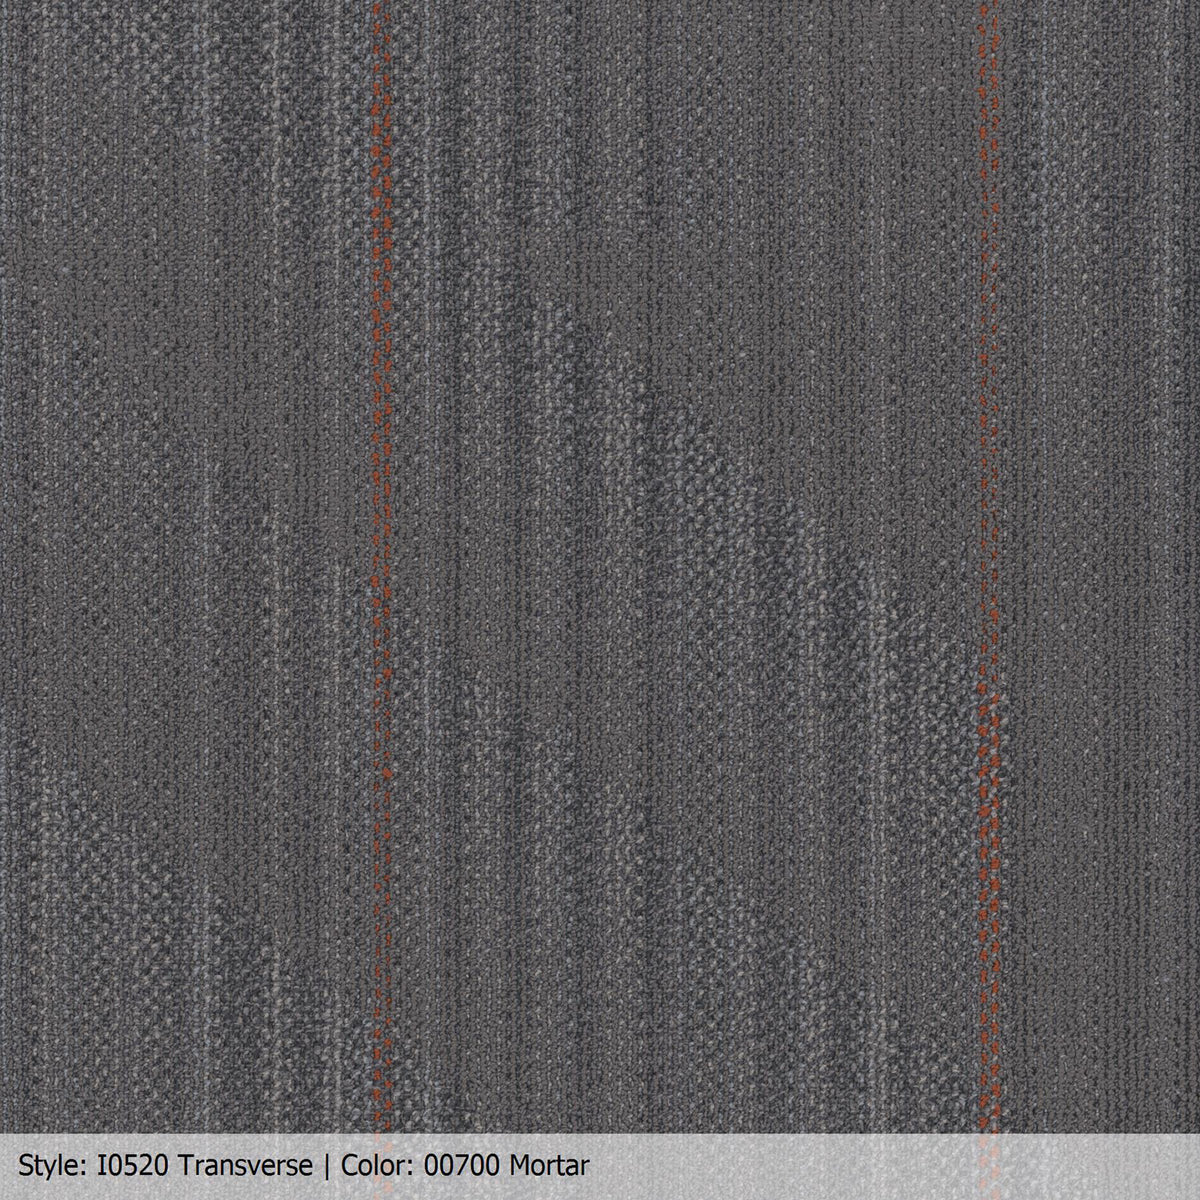 Patcraft - Infrastructure Collection - Transverse Carpet Tile - Mortar